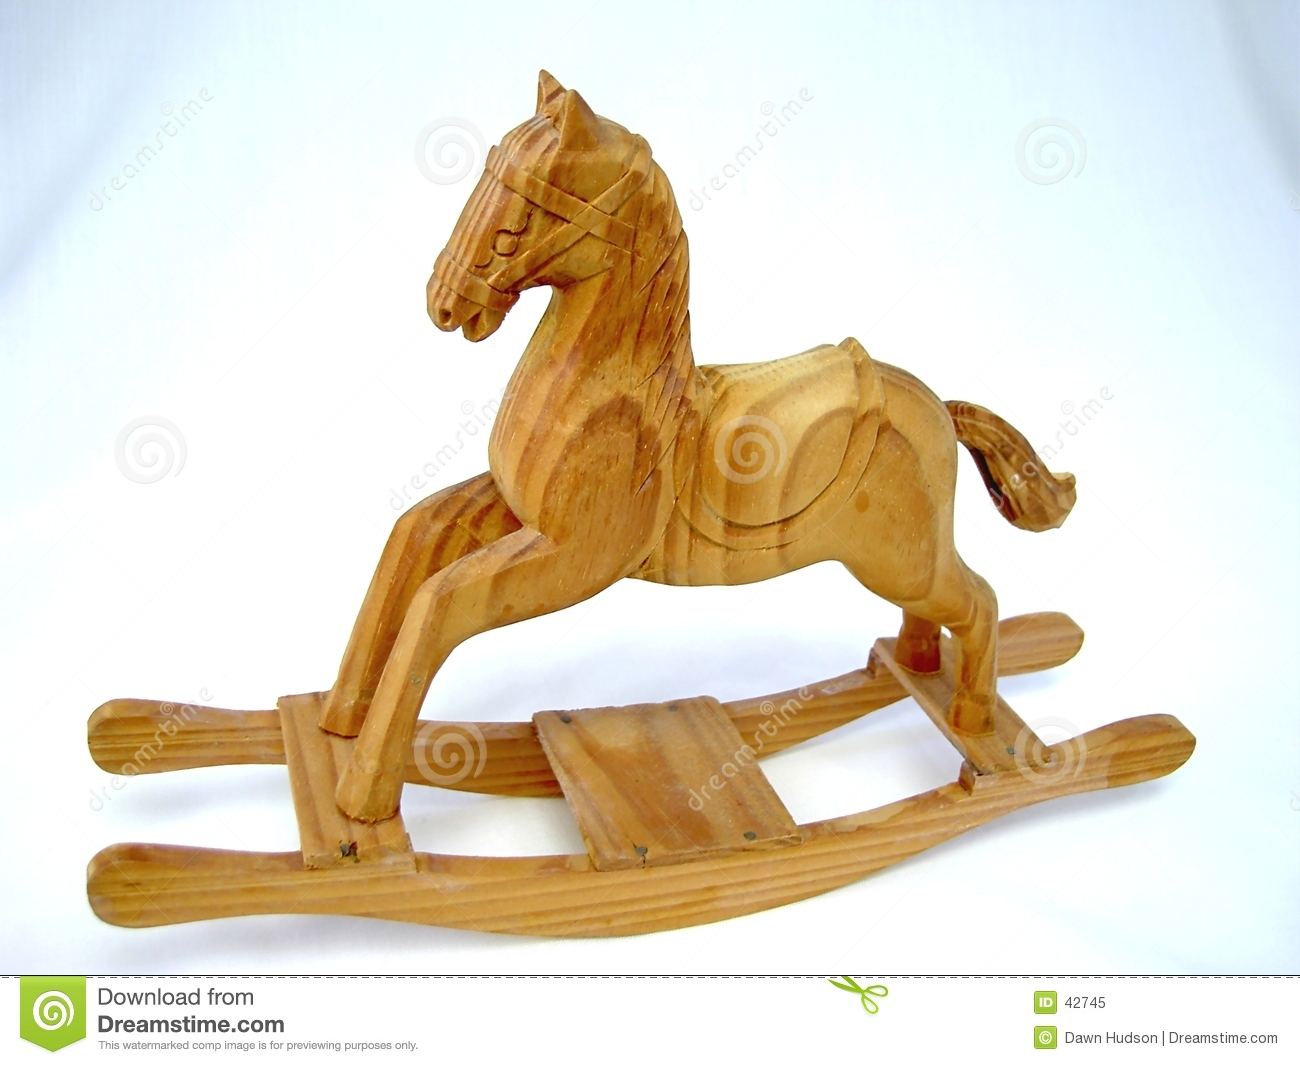 Rocking horse royalty free stock photo image